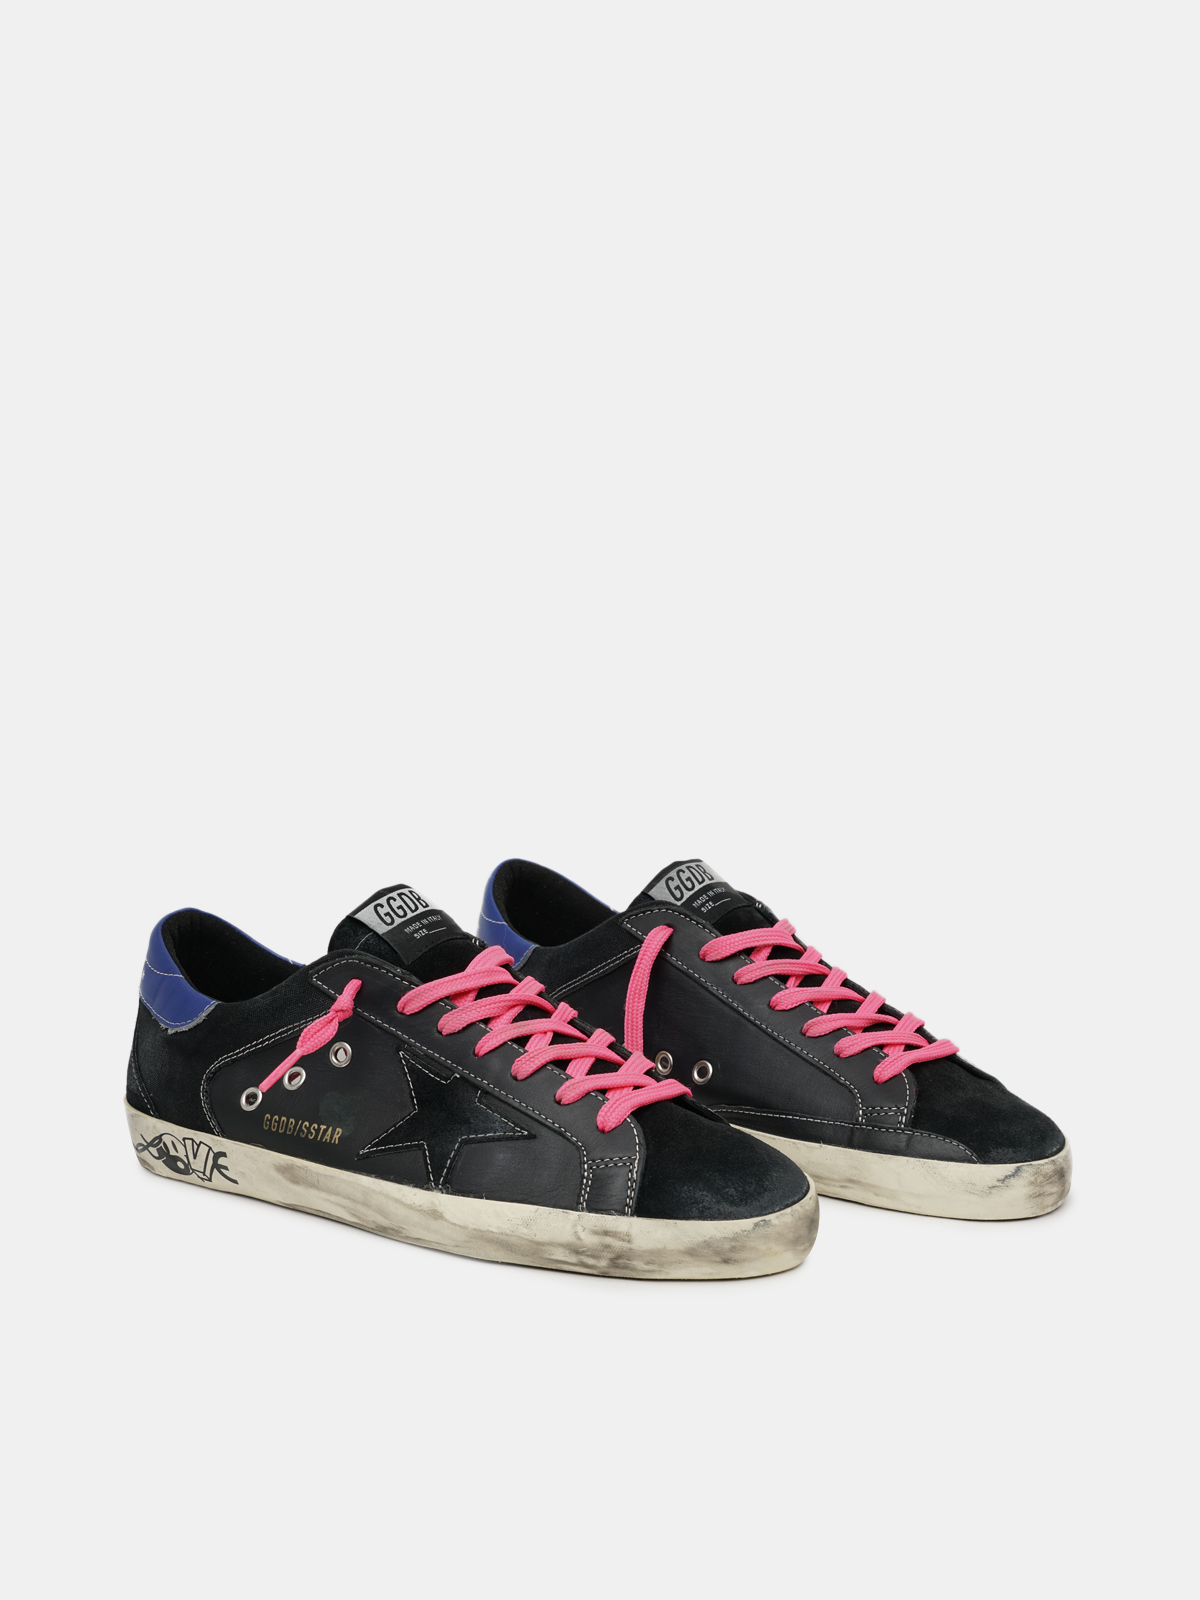 Golden Goose - Super-Star sneakers in canvas and leather with fuchsia laces and suede inserts in